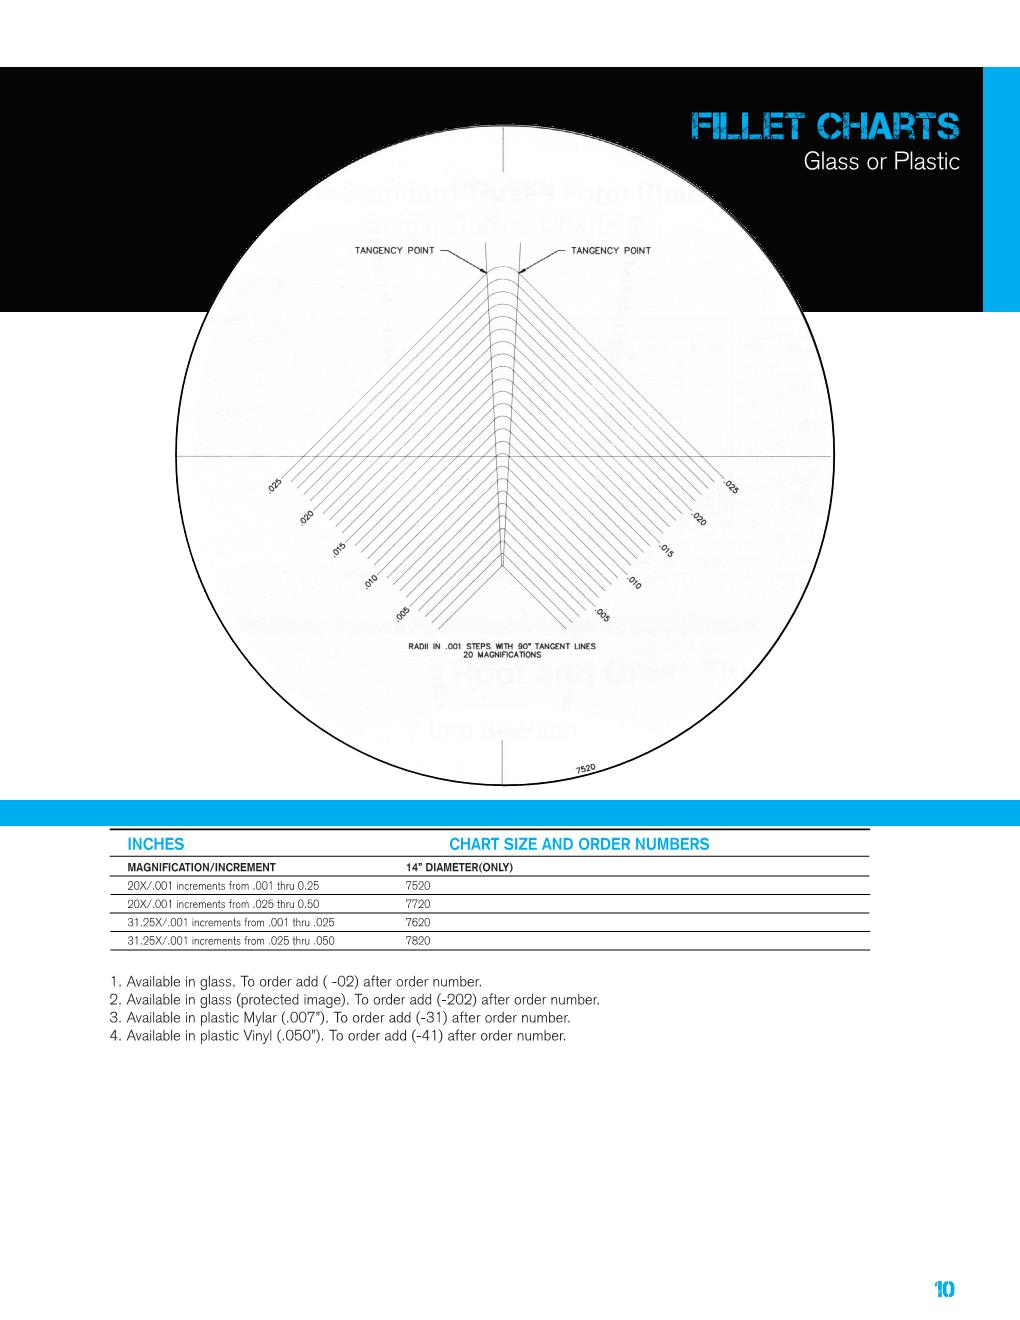 Unlimited Services Chart & Fixture Catalog 12.2018 FINAL Page 011.jpg